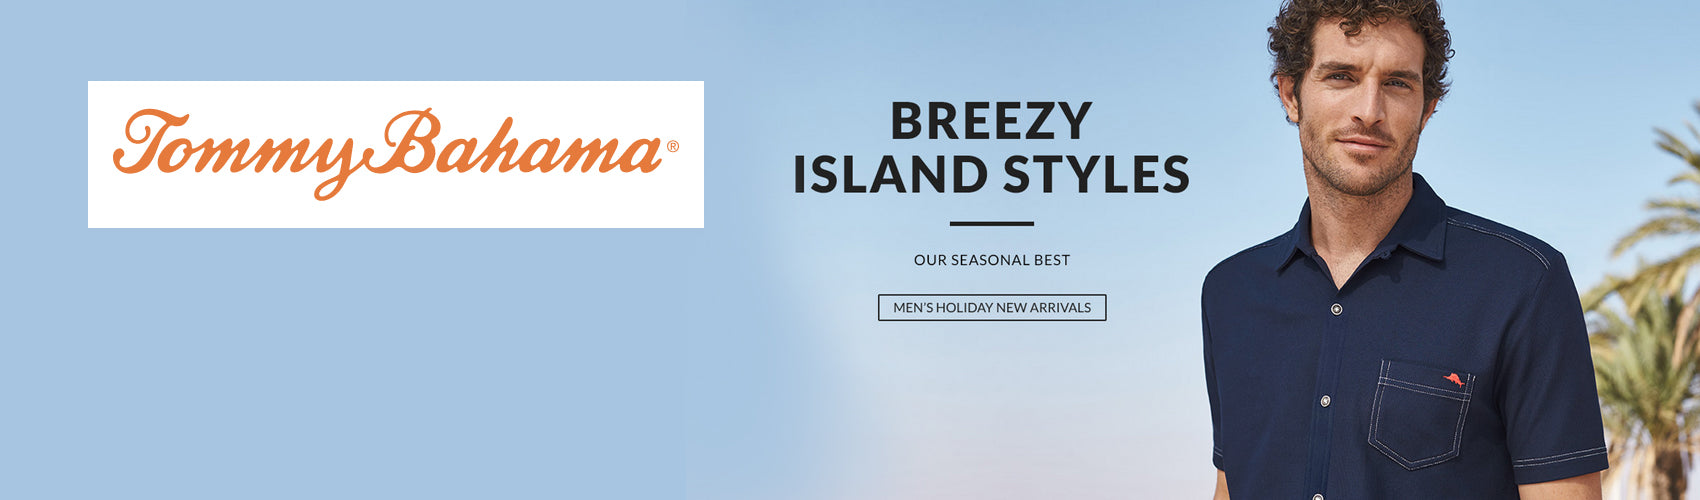 Tommy Bahama island wear and lifestyle wear